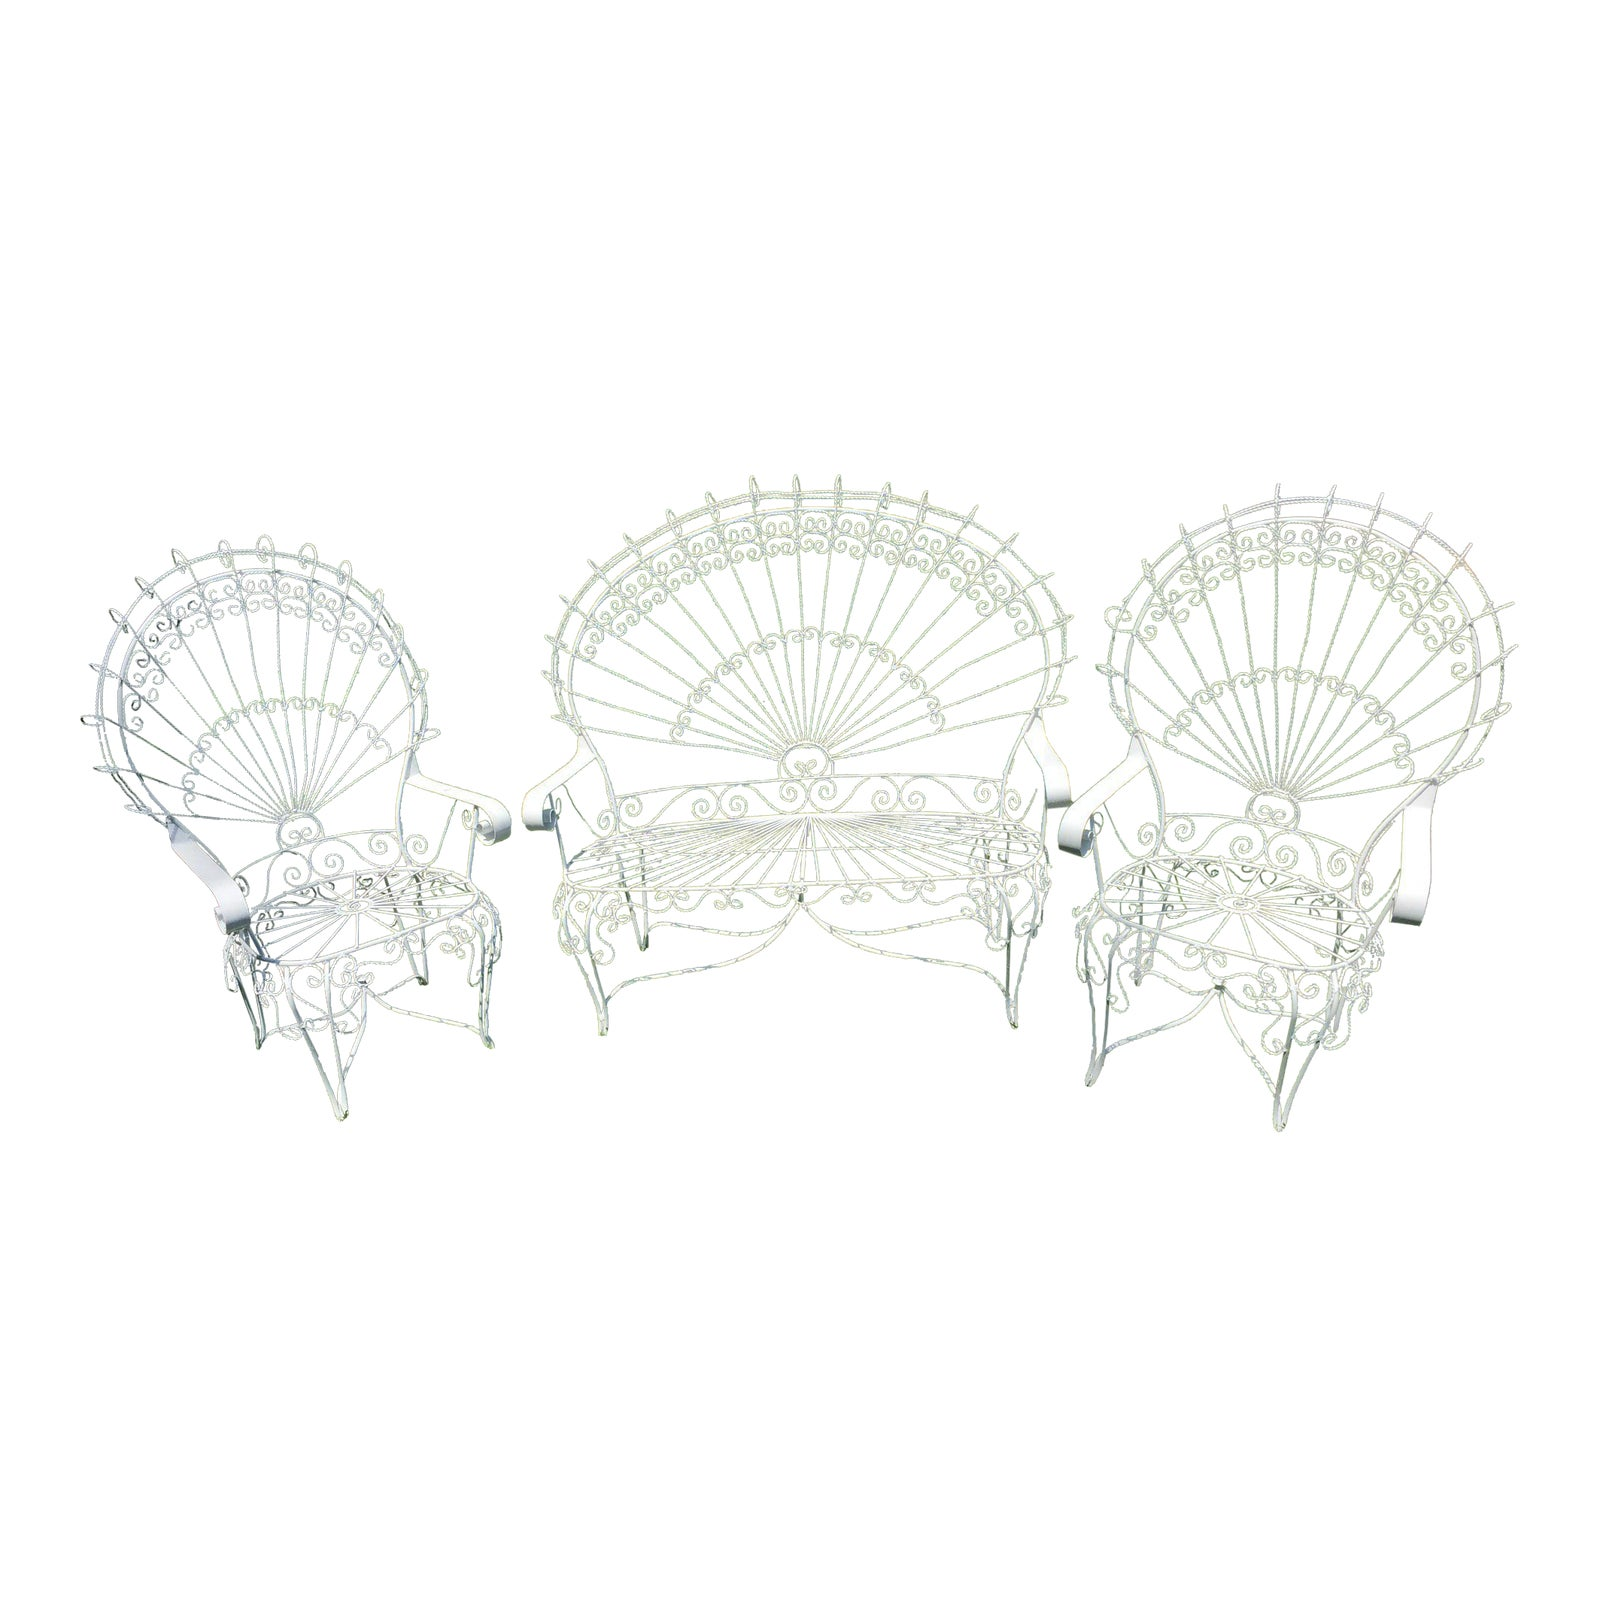 Vintage Wrought Iron Peacock Patio Chairs Set Of 3